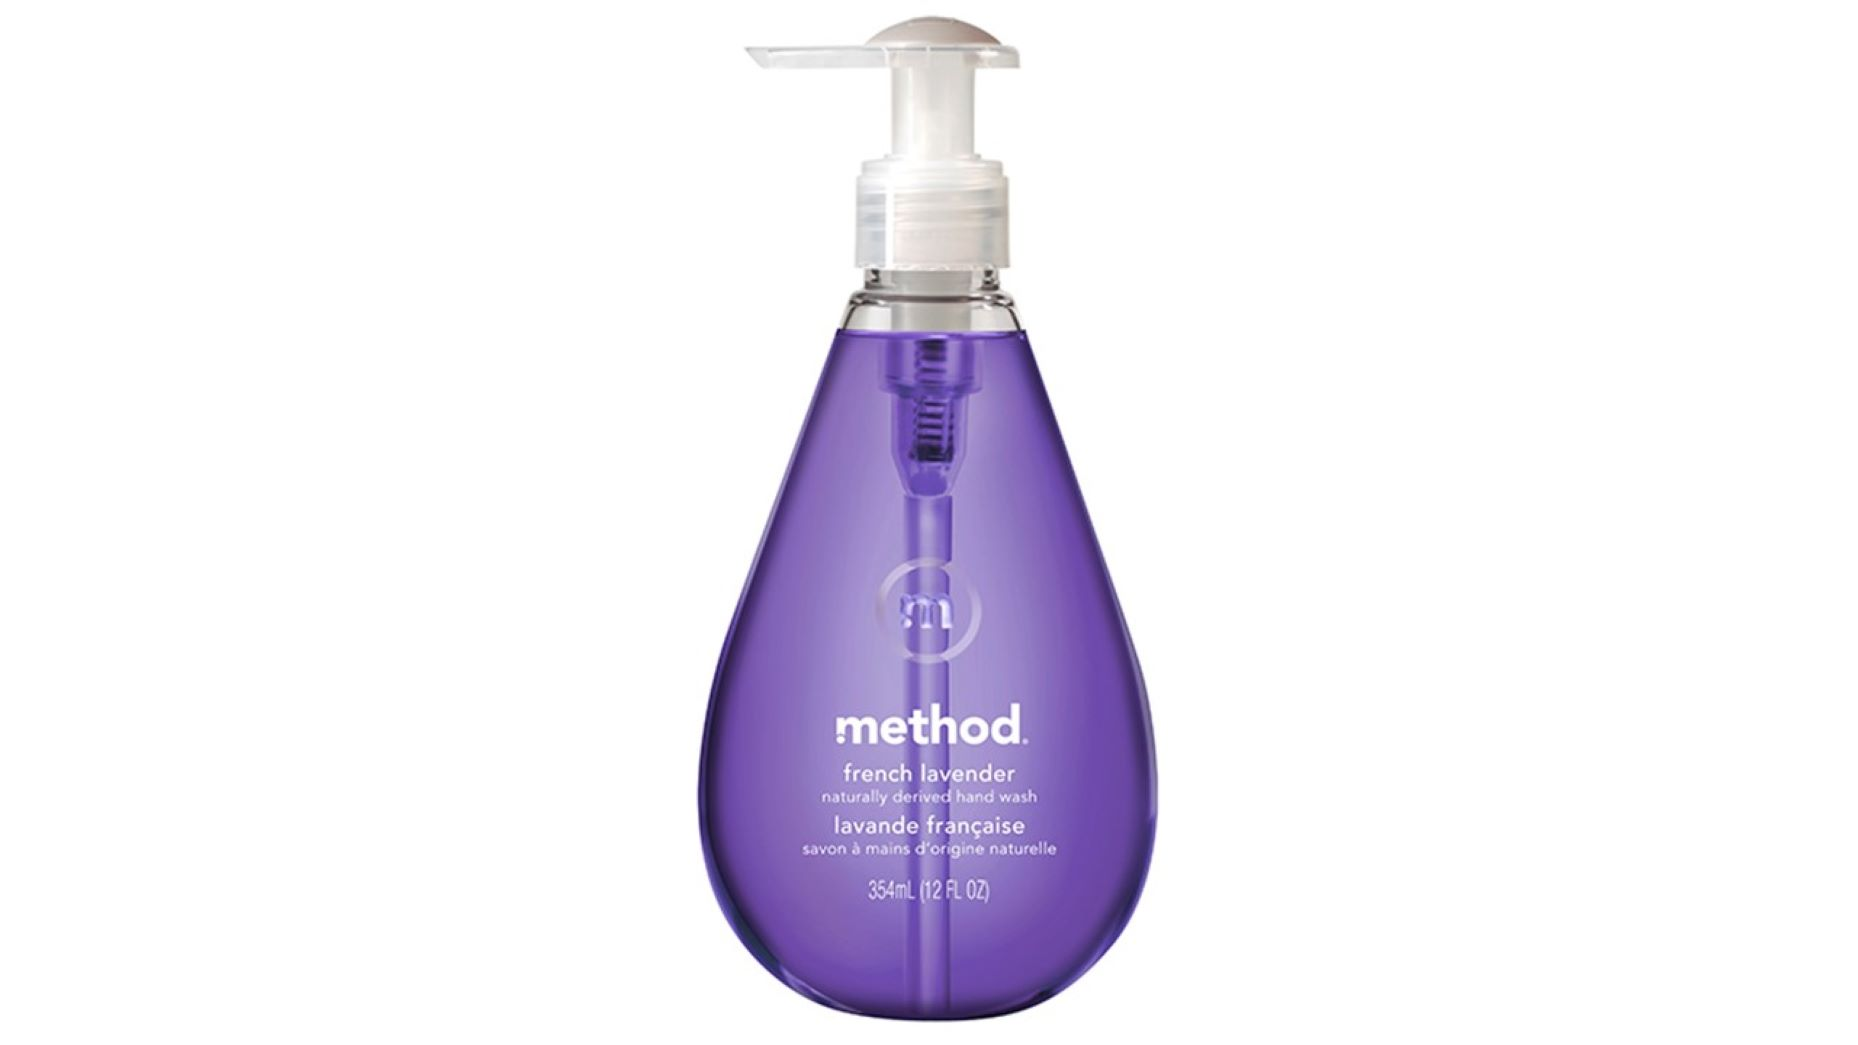 method Nestesaippua French Lavender 354ml